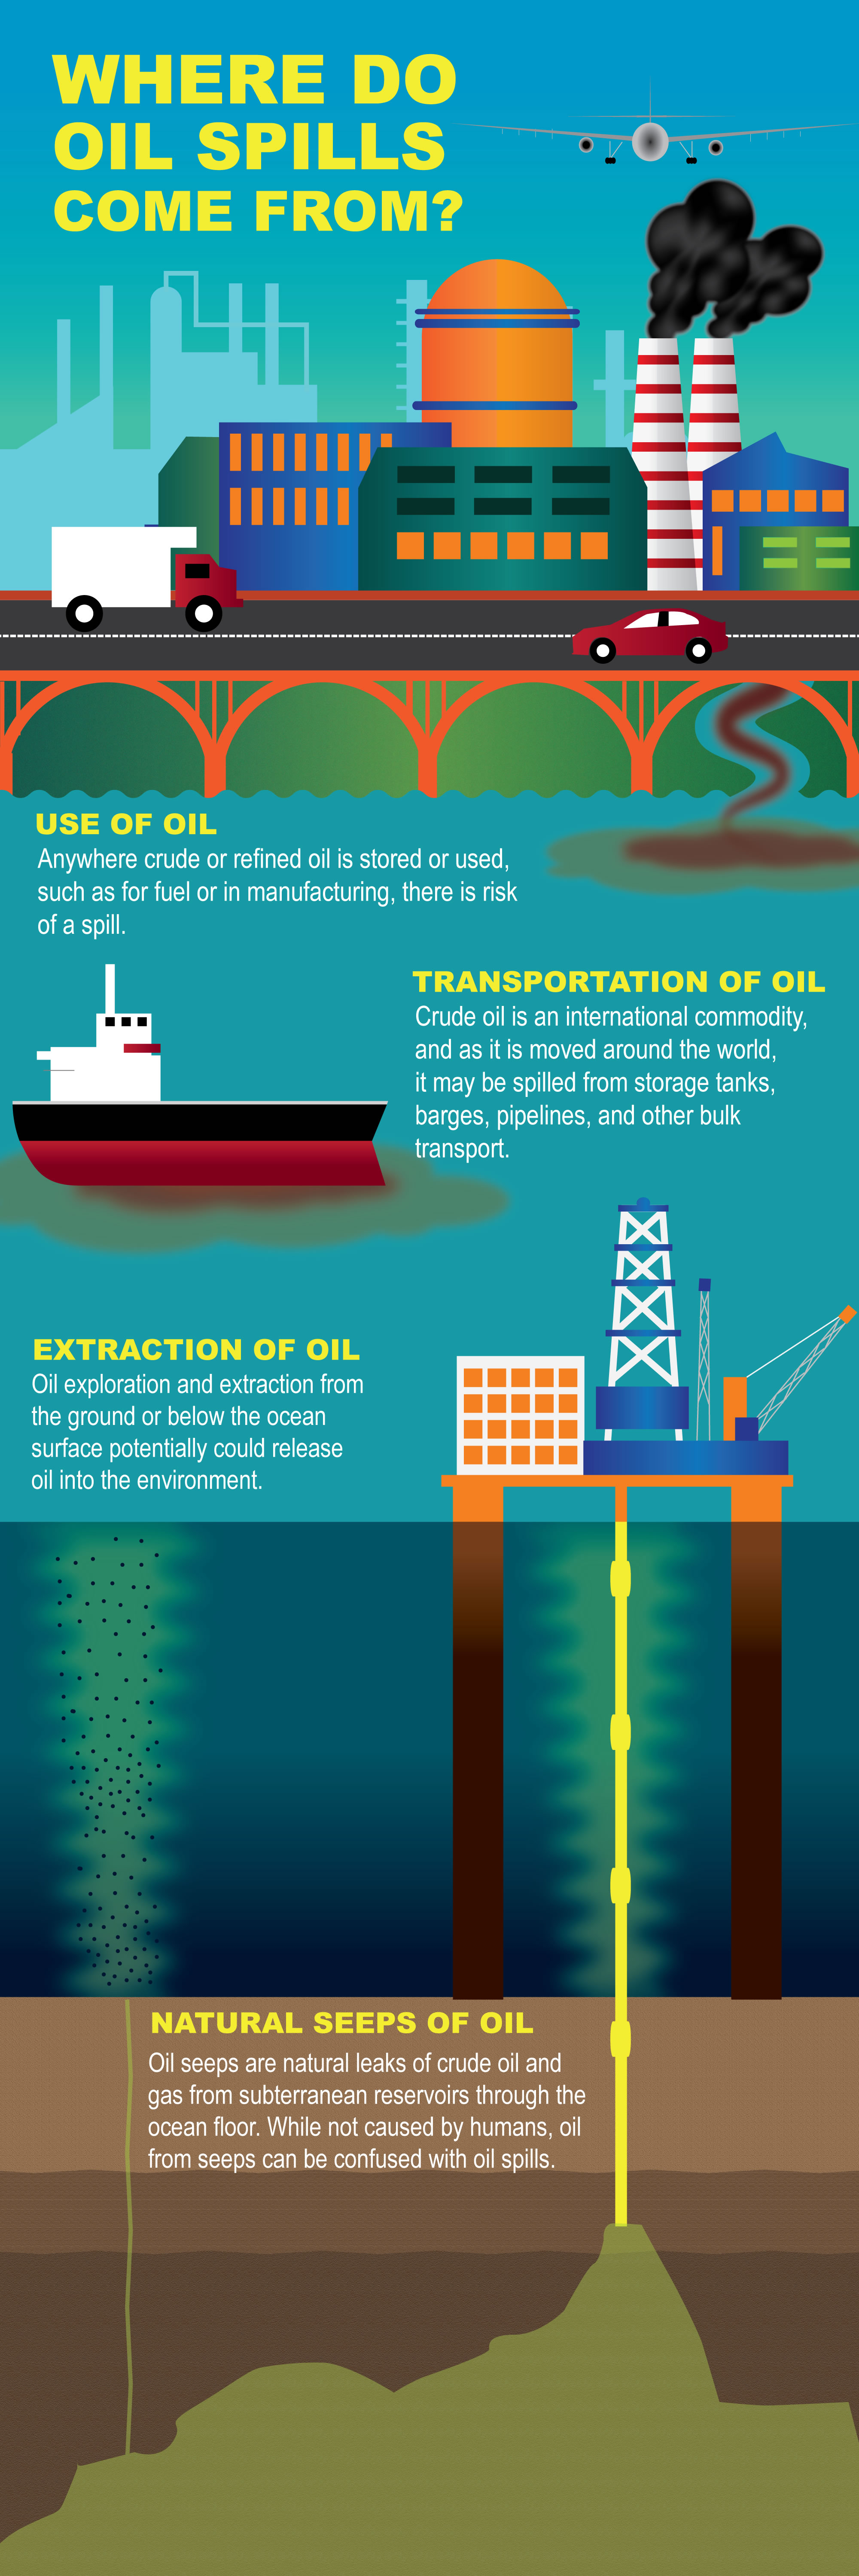 How does oil affect the environment?